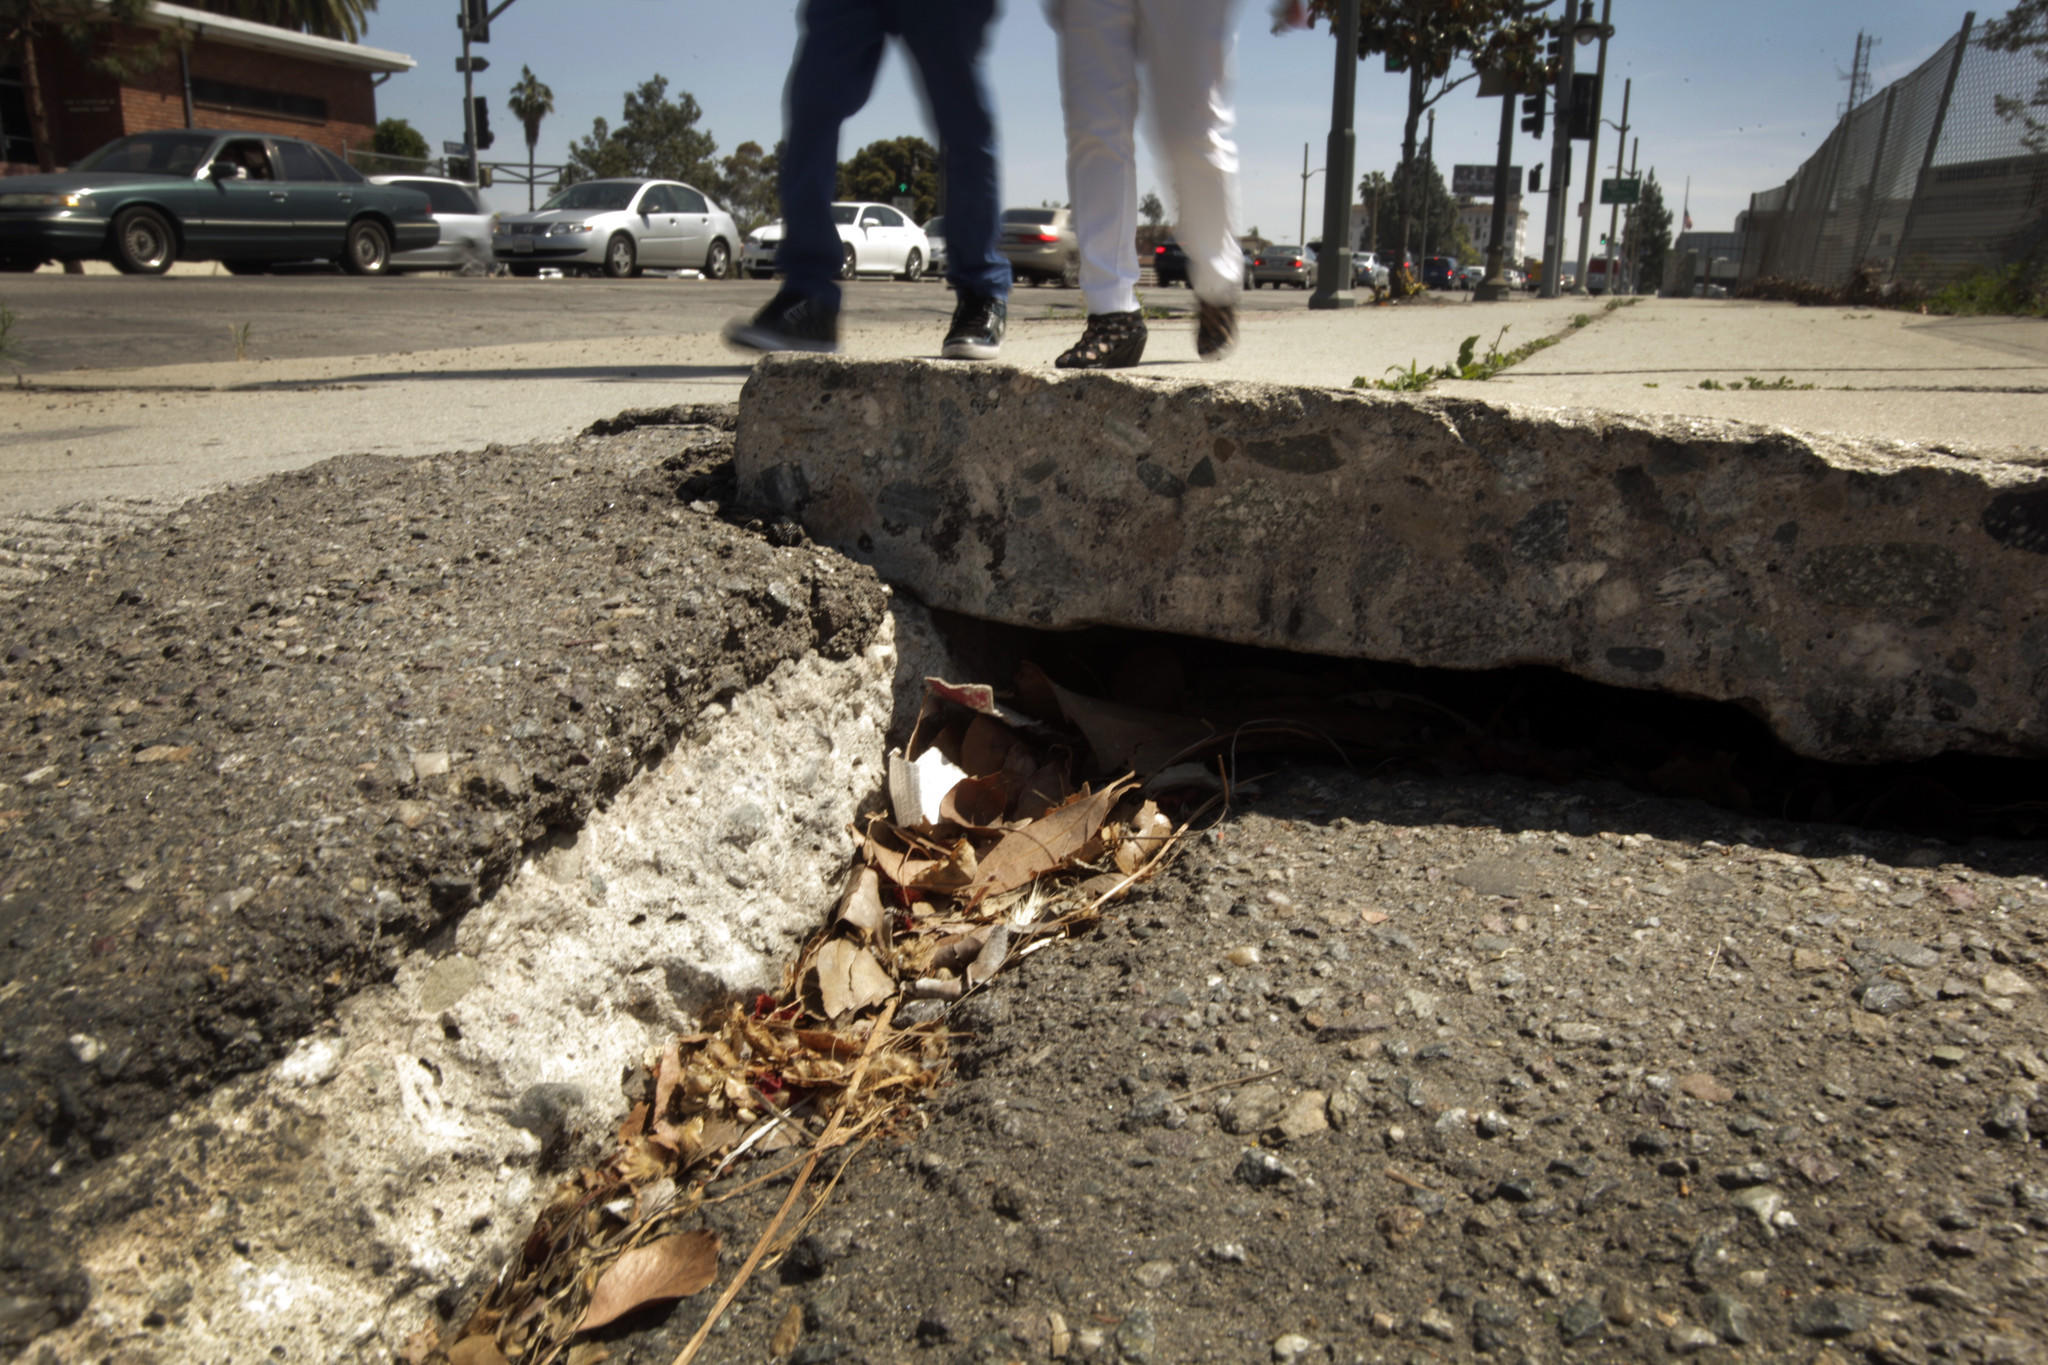 Two people navigate the sidewalk along Vermont Avenue where it meets the 101 Freeway.